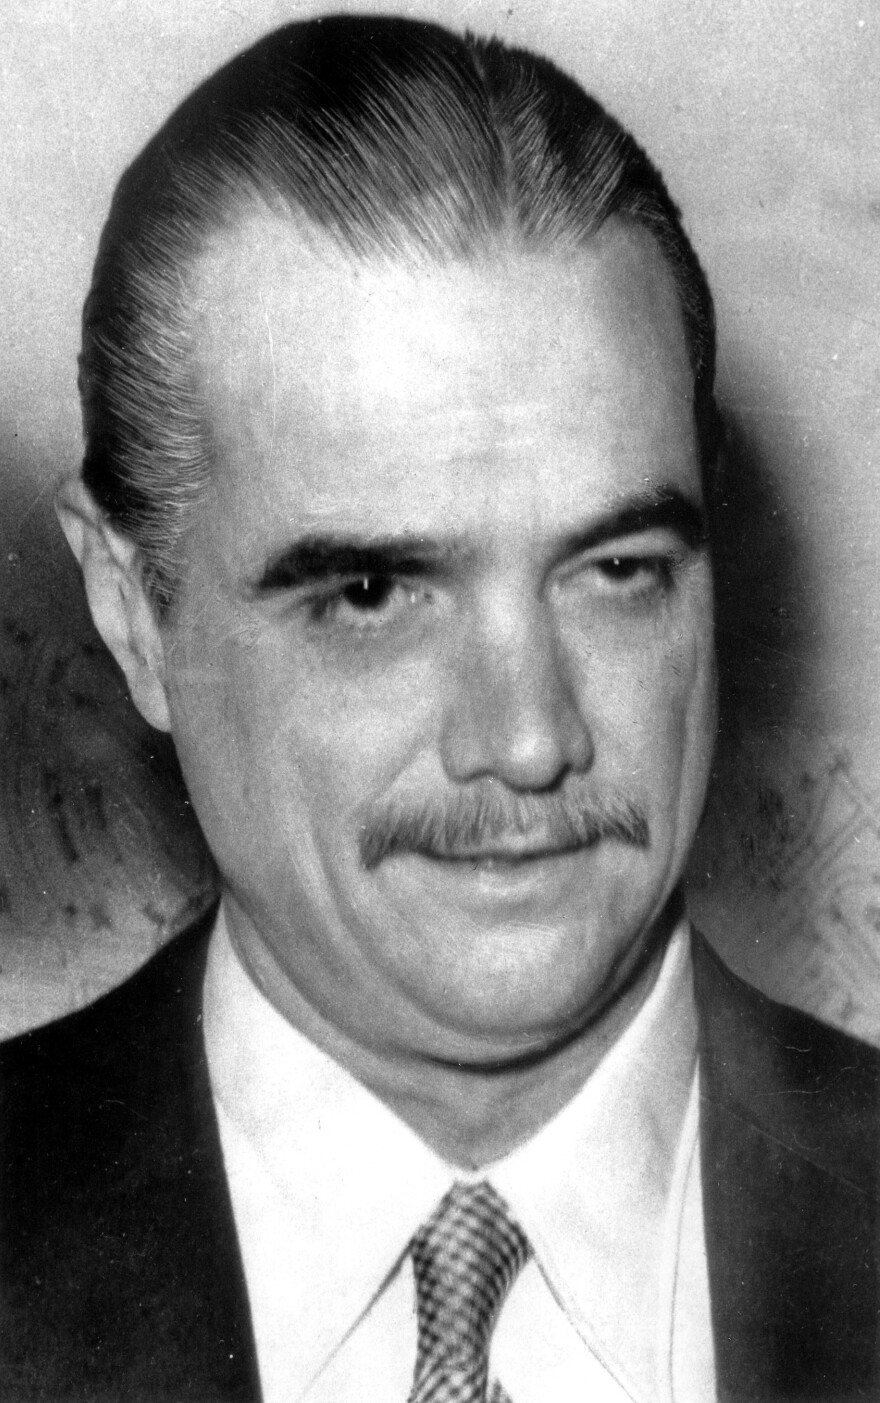 Howard Hughes, an eccentric, reclusive billionaire, agreed to be the cover story for the CIA plot to retrieve the Soviet sub. He announced that he would build a huge ship to mine valuable manganese nodules from the floor of the Pacific Ocean. In reality, the CIA was working with Hughes to build a one-of-a-kind ship to raise the sunken sub.